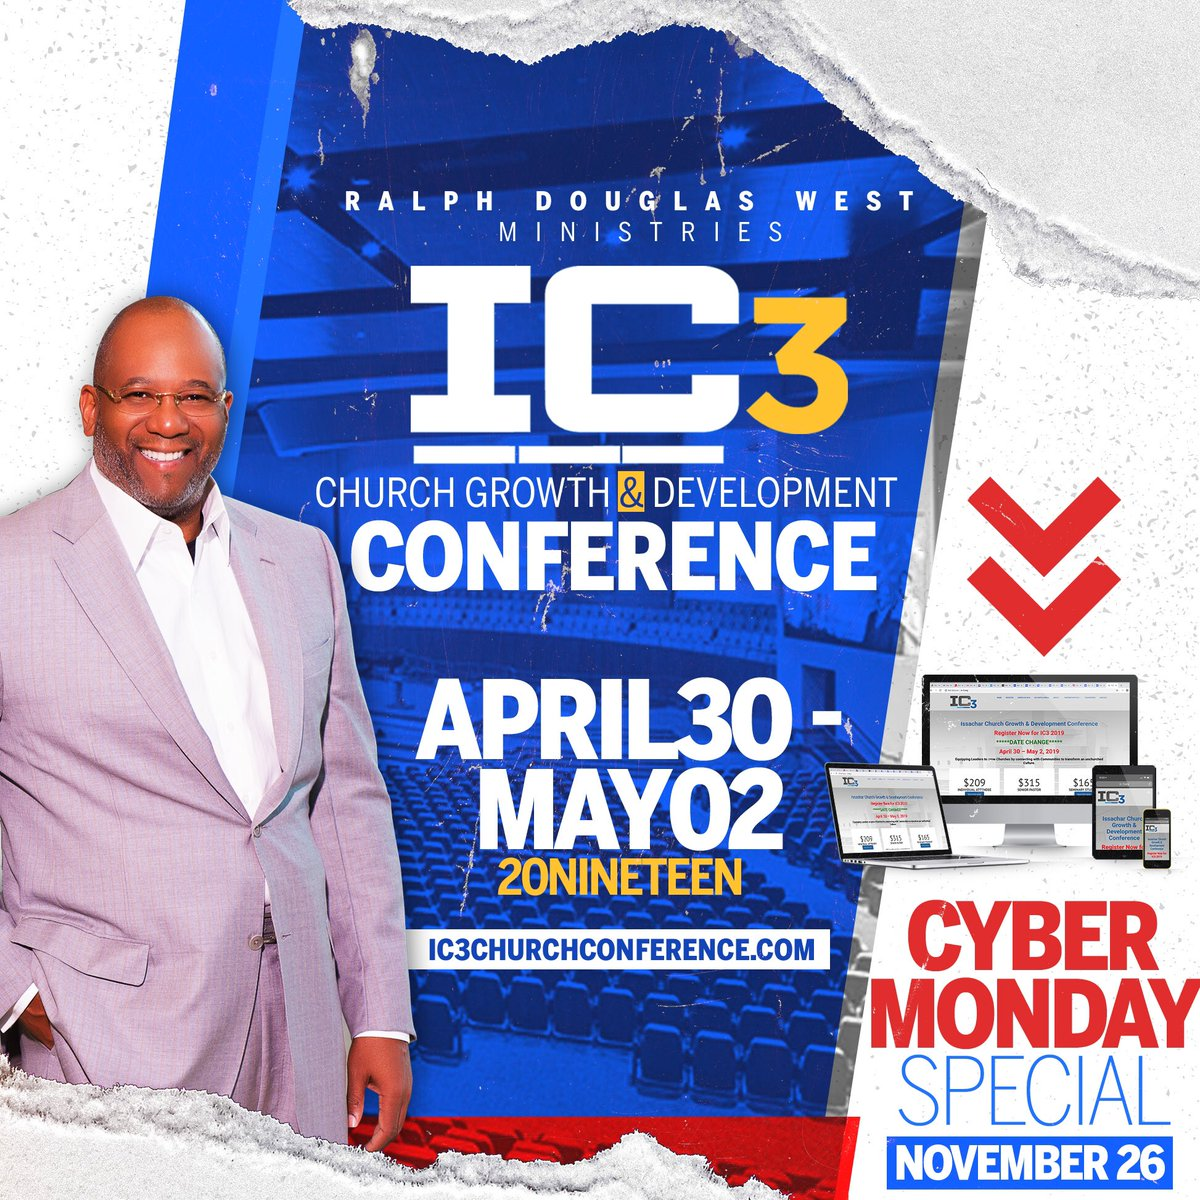 Issachar Conference on Twitter: